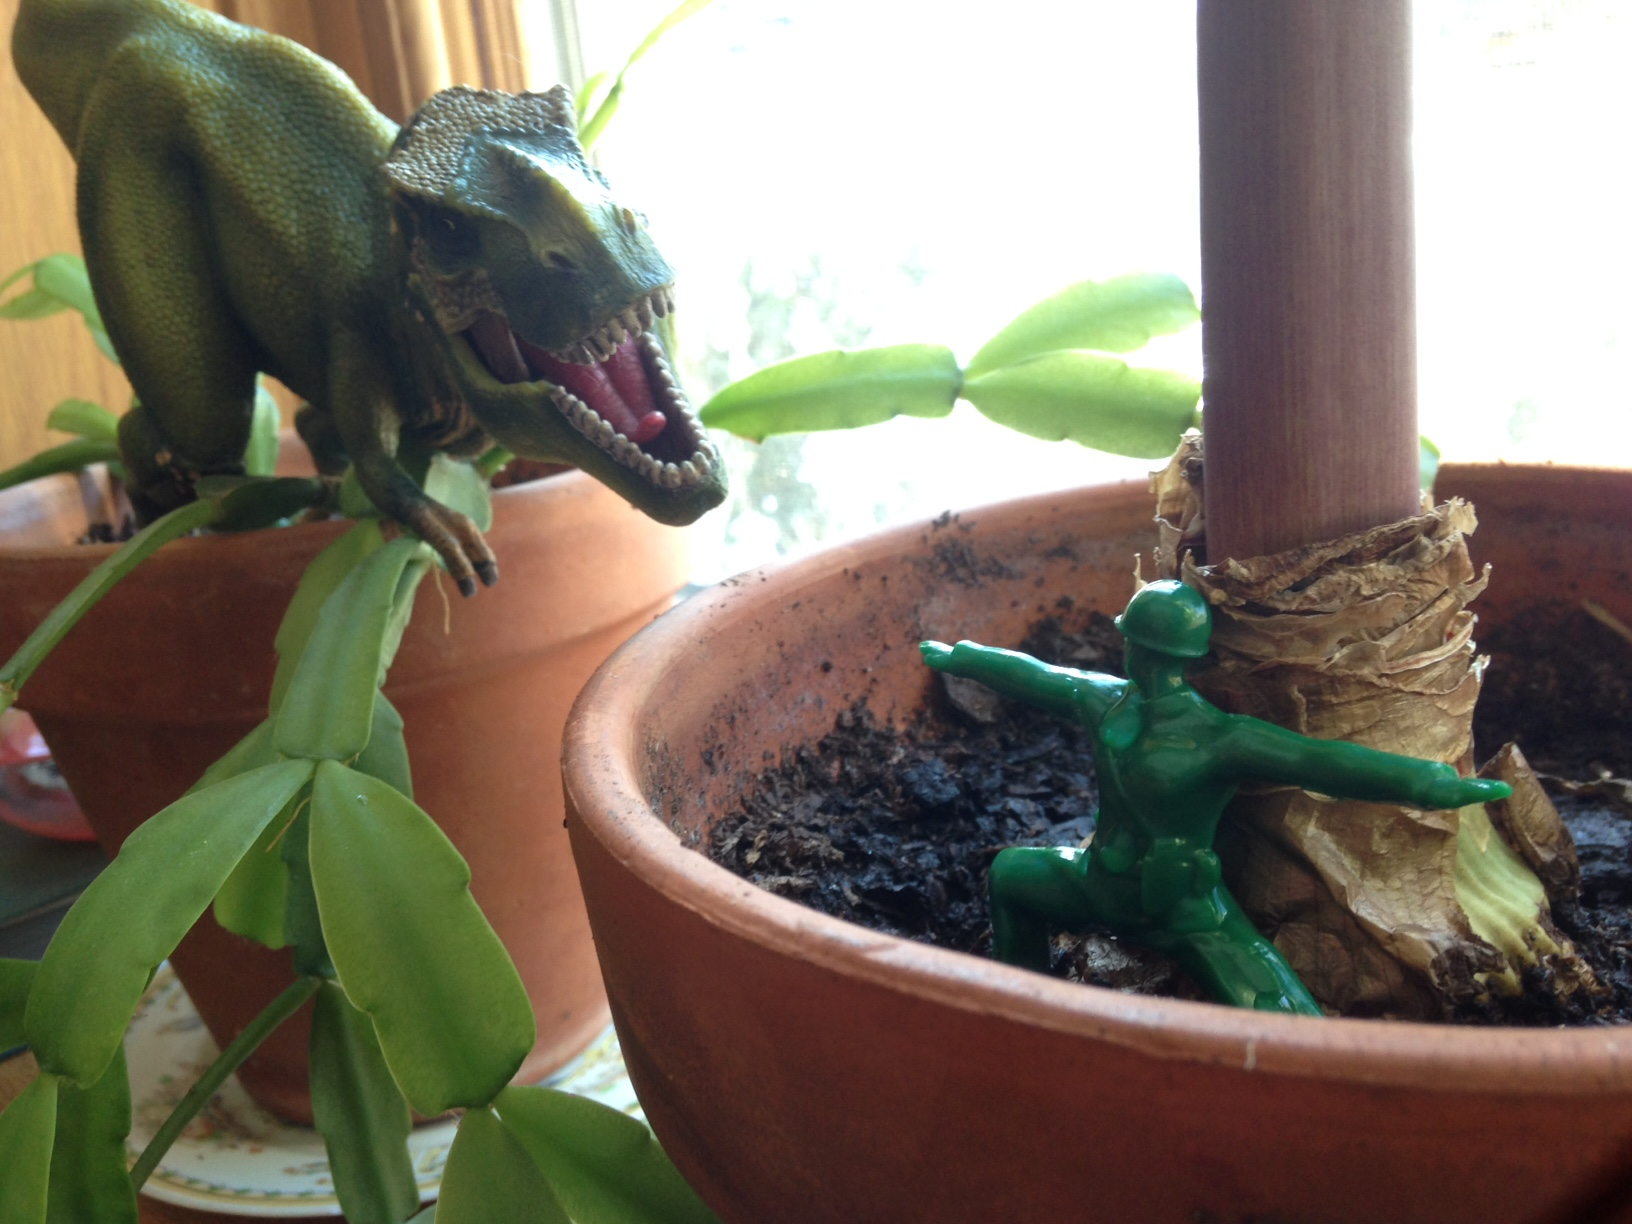 Yoga Joes can defeat dinosaurs with yoga zen power.